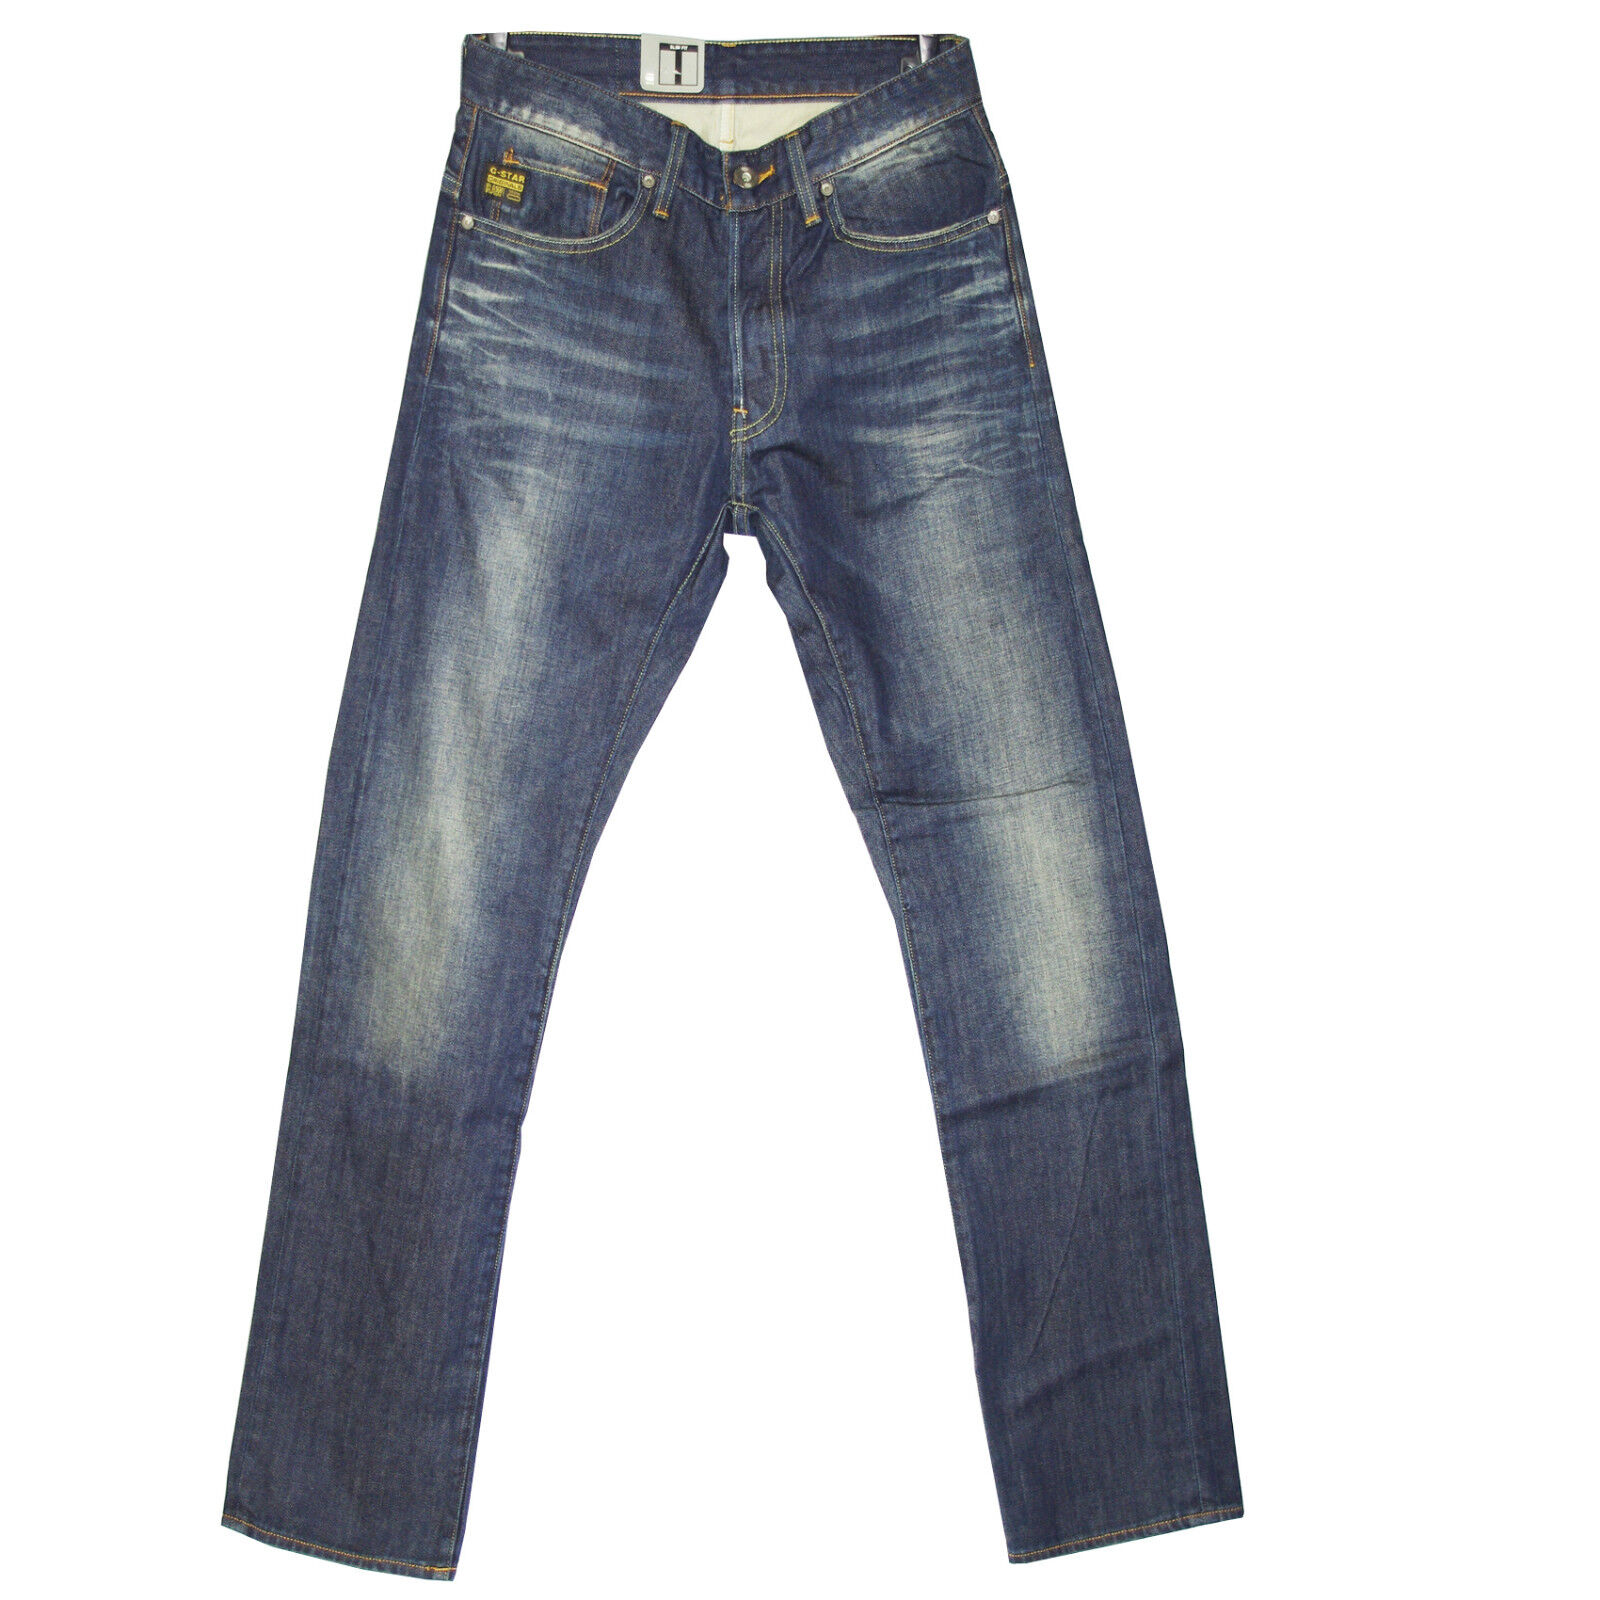 G-STAR RAW tapeRouge jeans slim YELD SLIM DARK AGED tapeRouge RAW  bleu homme 1e6612